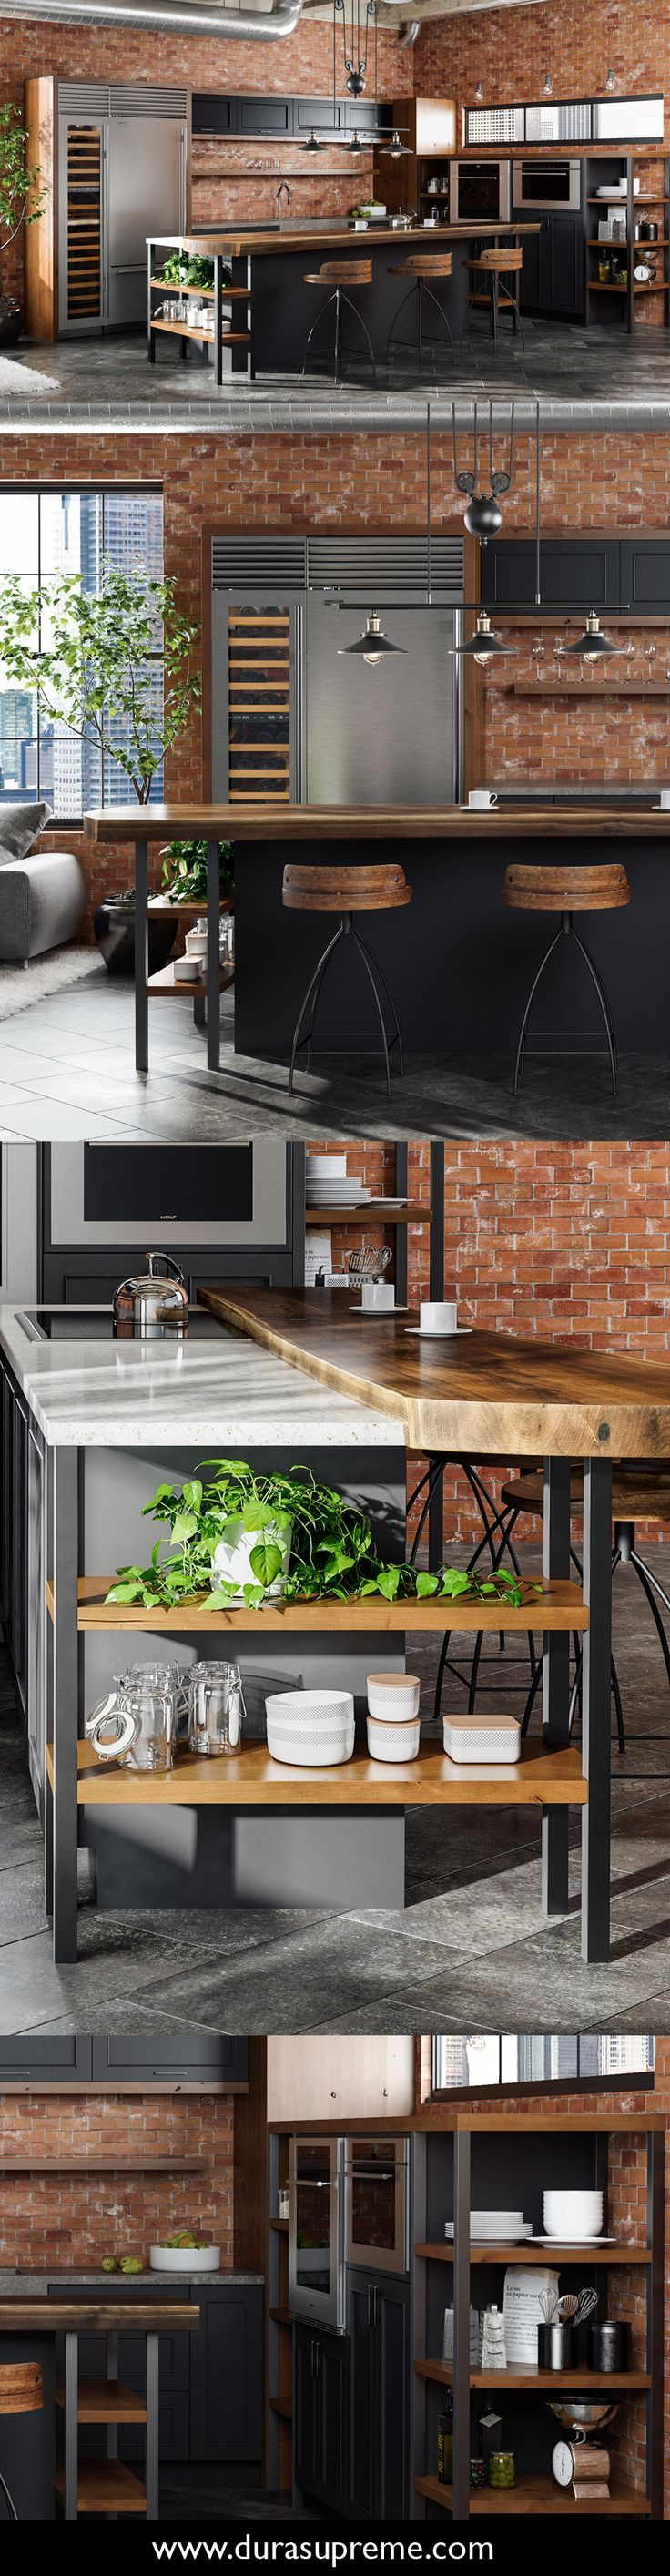 A Lofty Take On Industrial Style